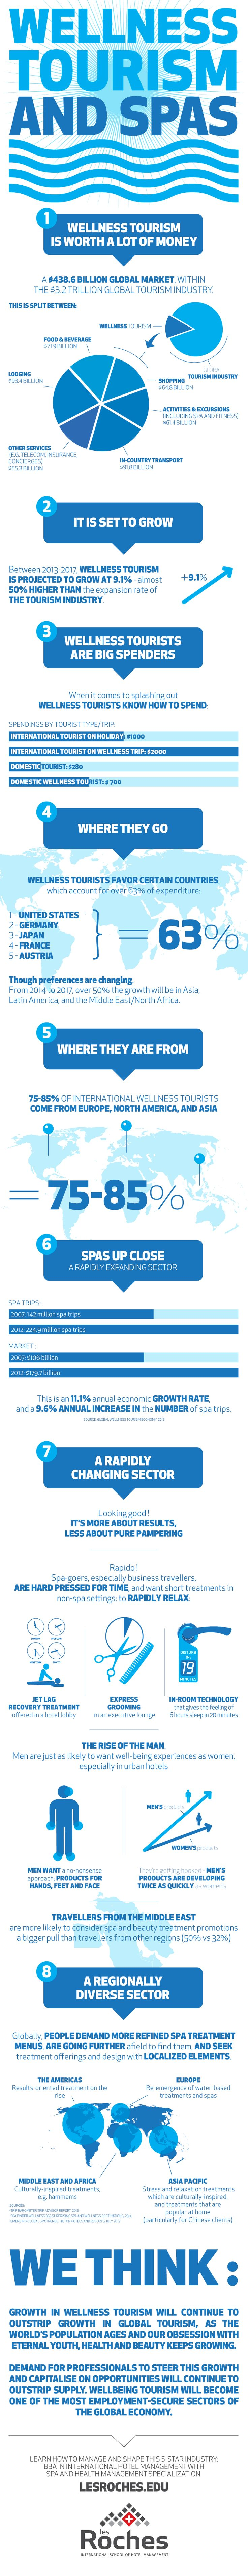 Spas and wellness tourism is one of the fastest growing sectors within the broader hospitality industry.  It seems people the world over just can't get enough of treatments to relax, pamper and rejuvenate.  This infographic highlights key facts and figures, regional trends and an idea of the future direction.